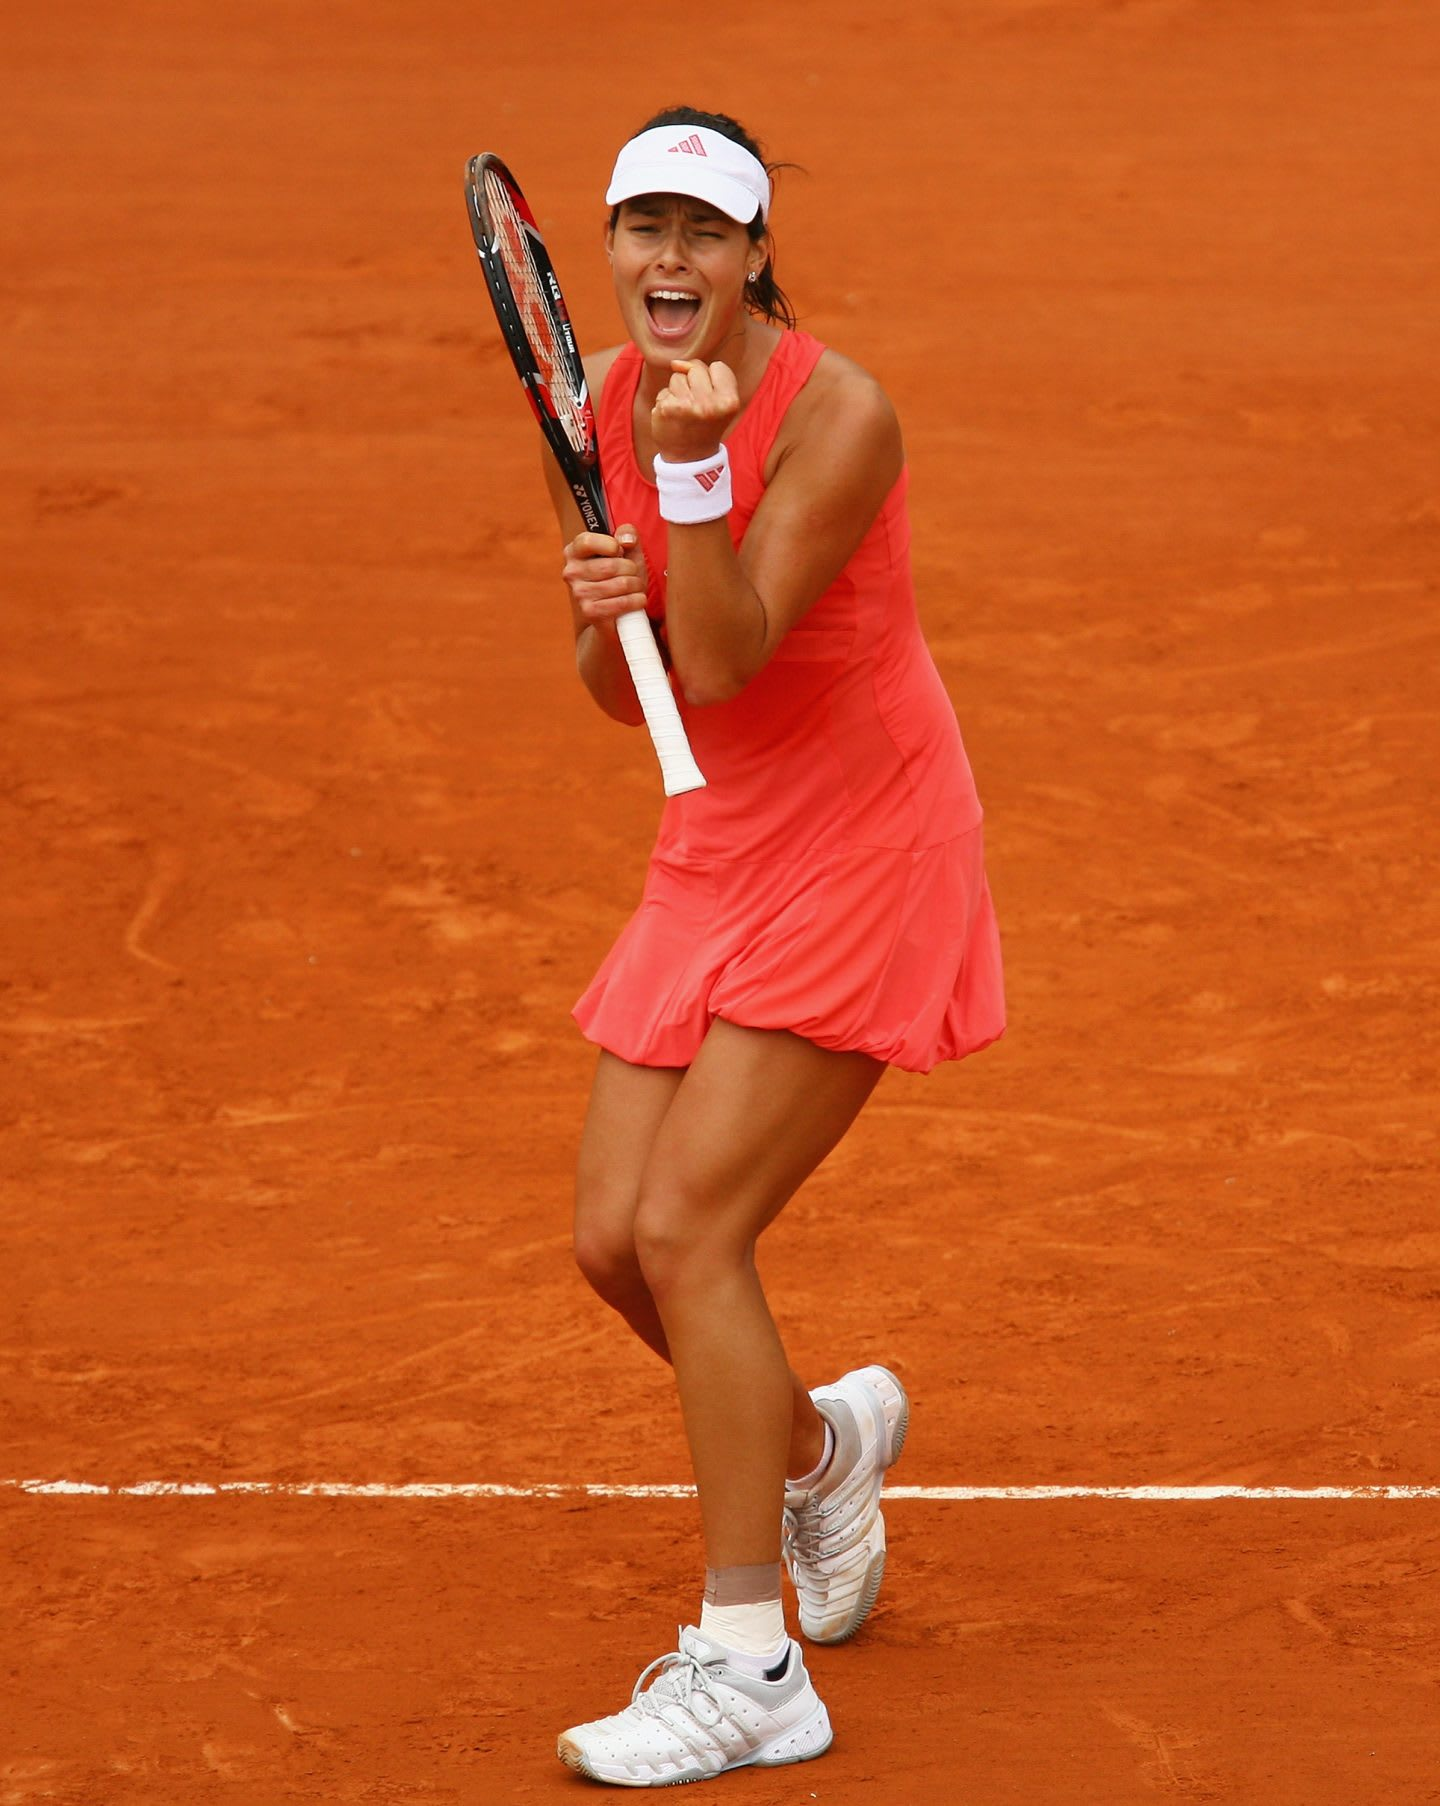 French Open - Roland Garros 2008 Ana Ivanovic cheering interview listen to your heart